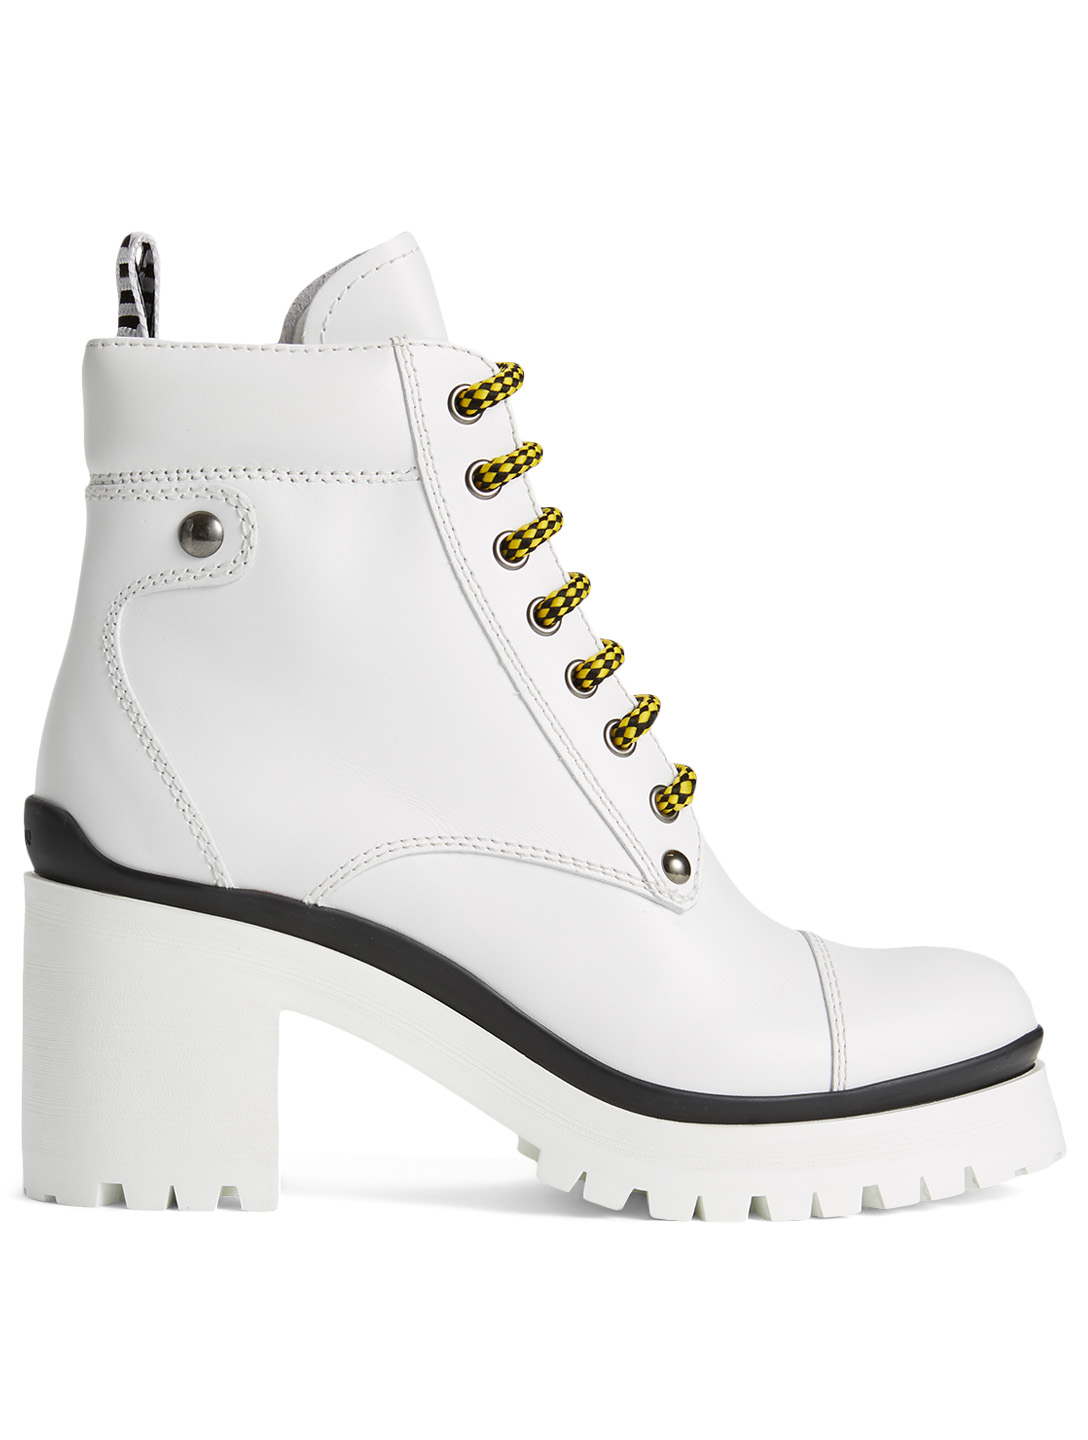 MIU MIU Leather Heeled Combat Boots Women's White